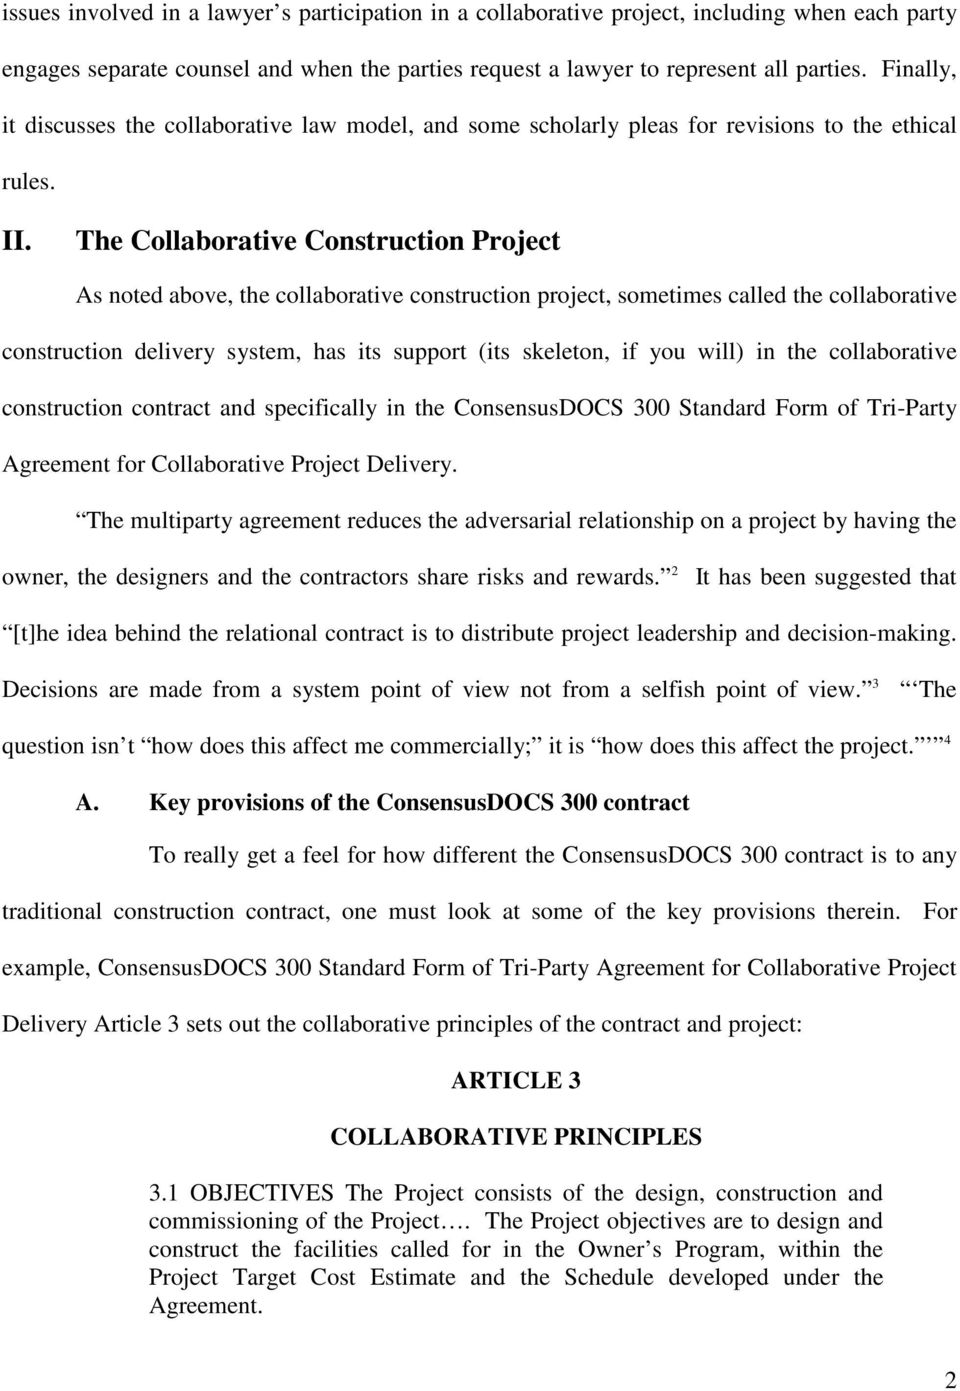 The Collaborative Construction Project As noted above, the collaborative construction project, sometimes called the collaborative construction delivery system, has its support (its skeleton, if you